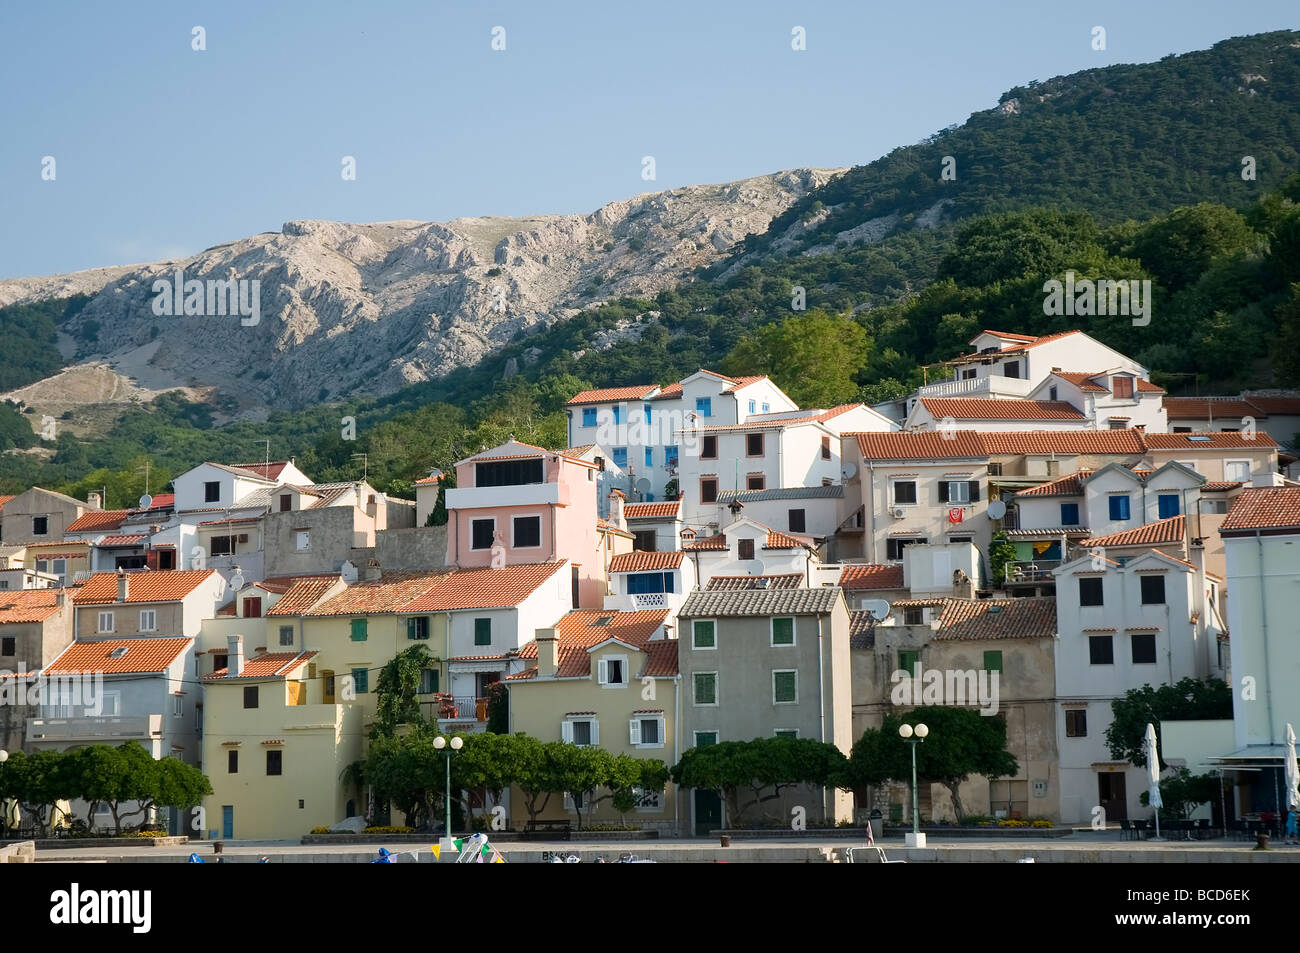 The old town of baska - Stock Image